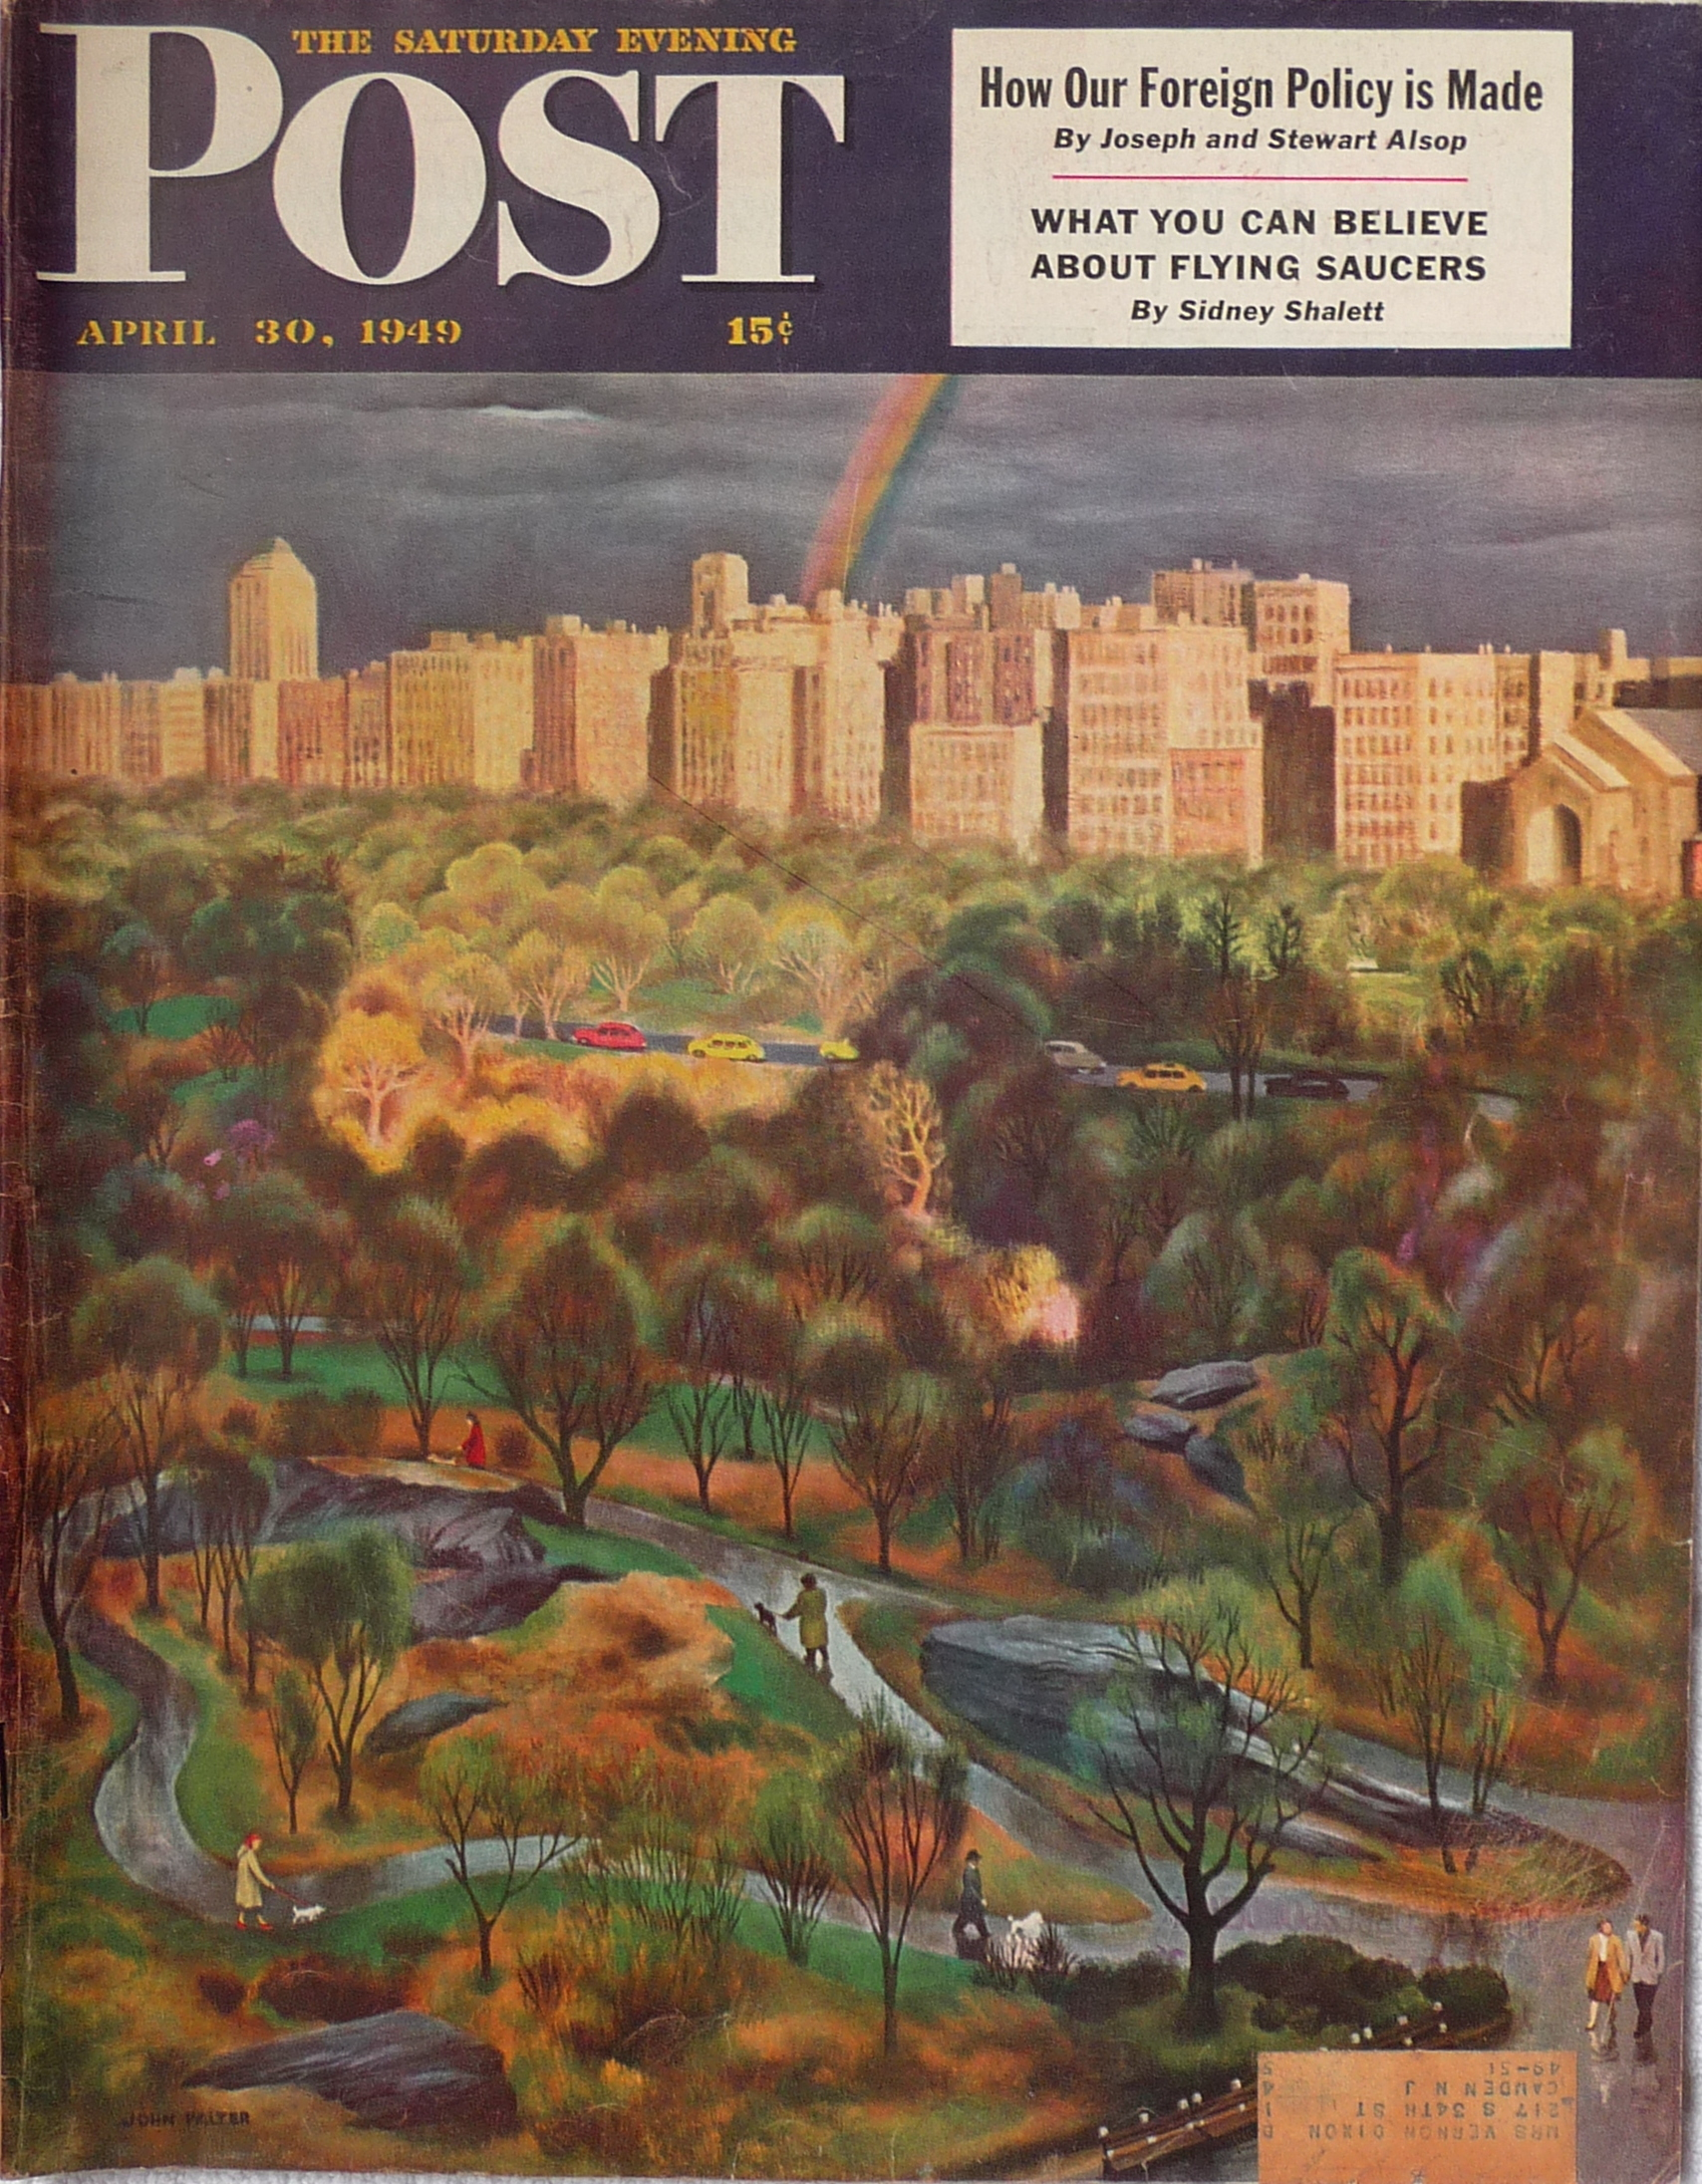 New York In The Late 1940s As Seen By The Saturday Evening Post's Cover Artists